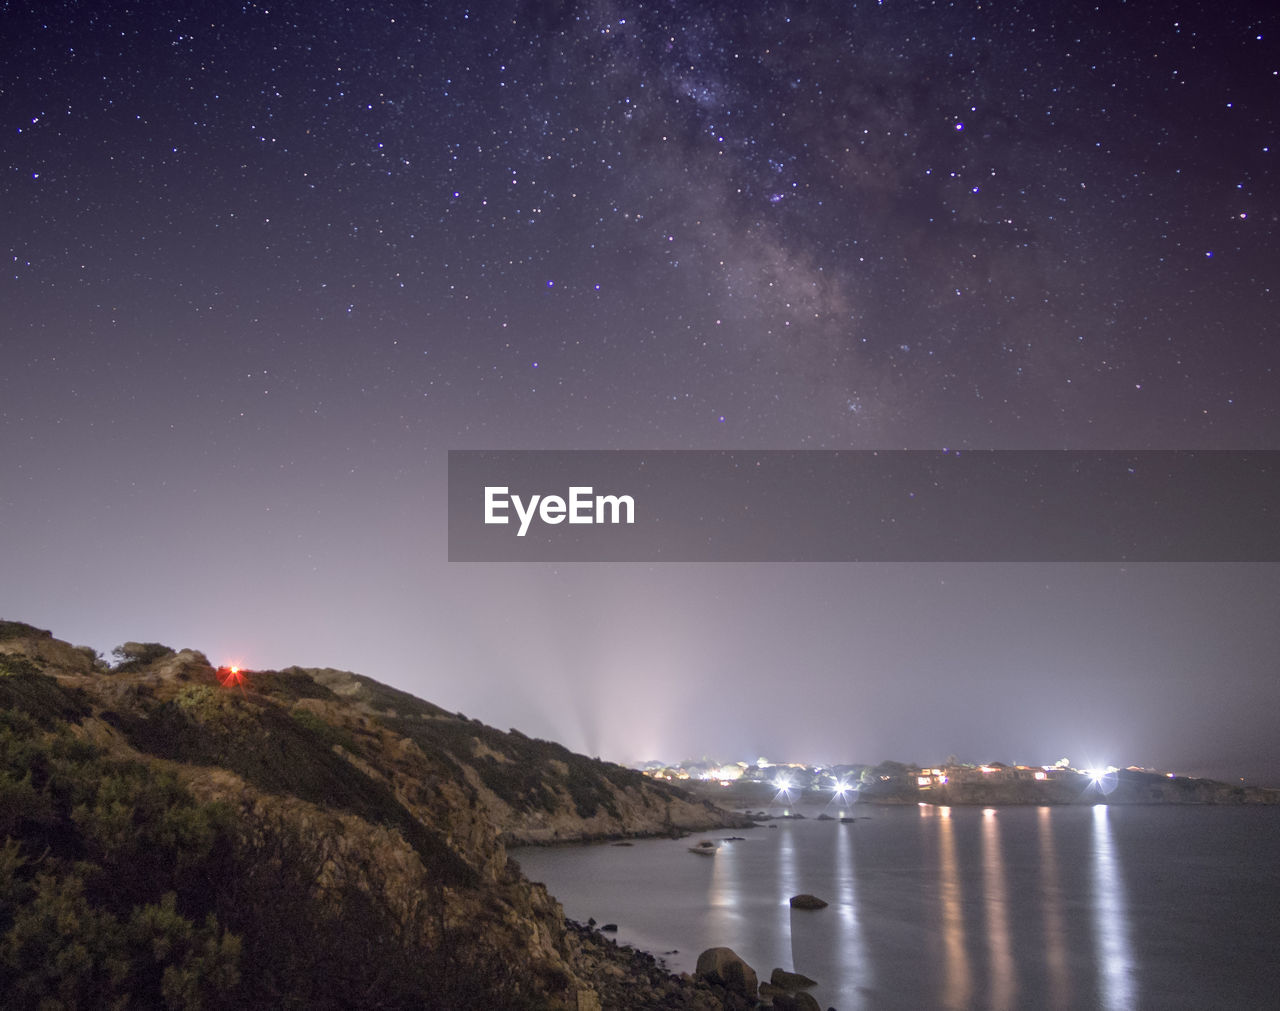 night, sky, star - space, water, beauty in nature, scenics - nature, space, astronomy, nature, star, no people, tranquility, tranquil scene, star field, galaxy, illuminated, waterfront, idyllic, rock, milky way